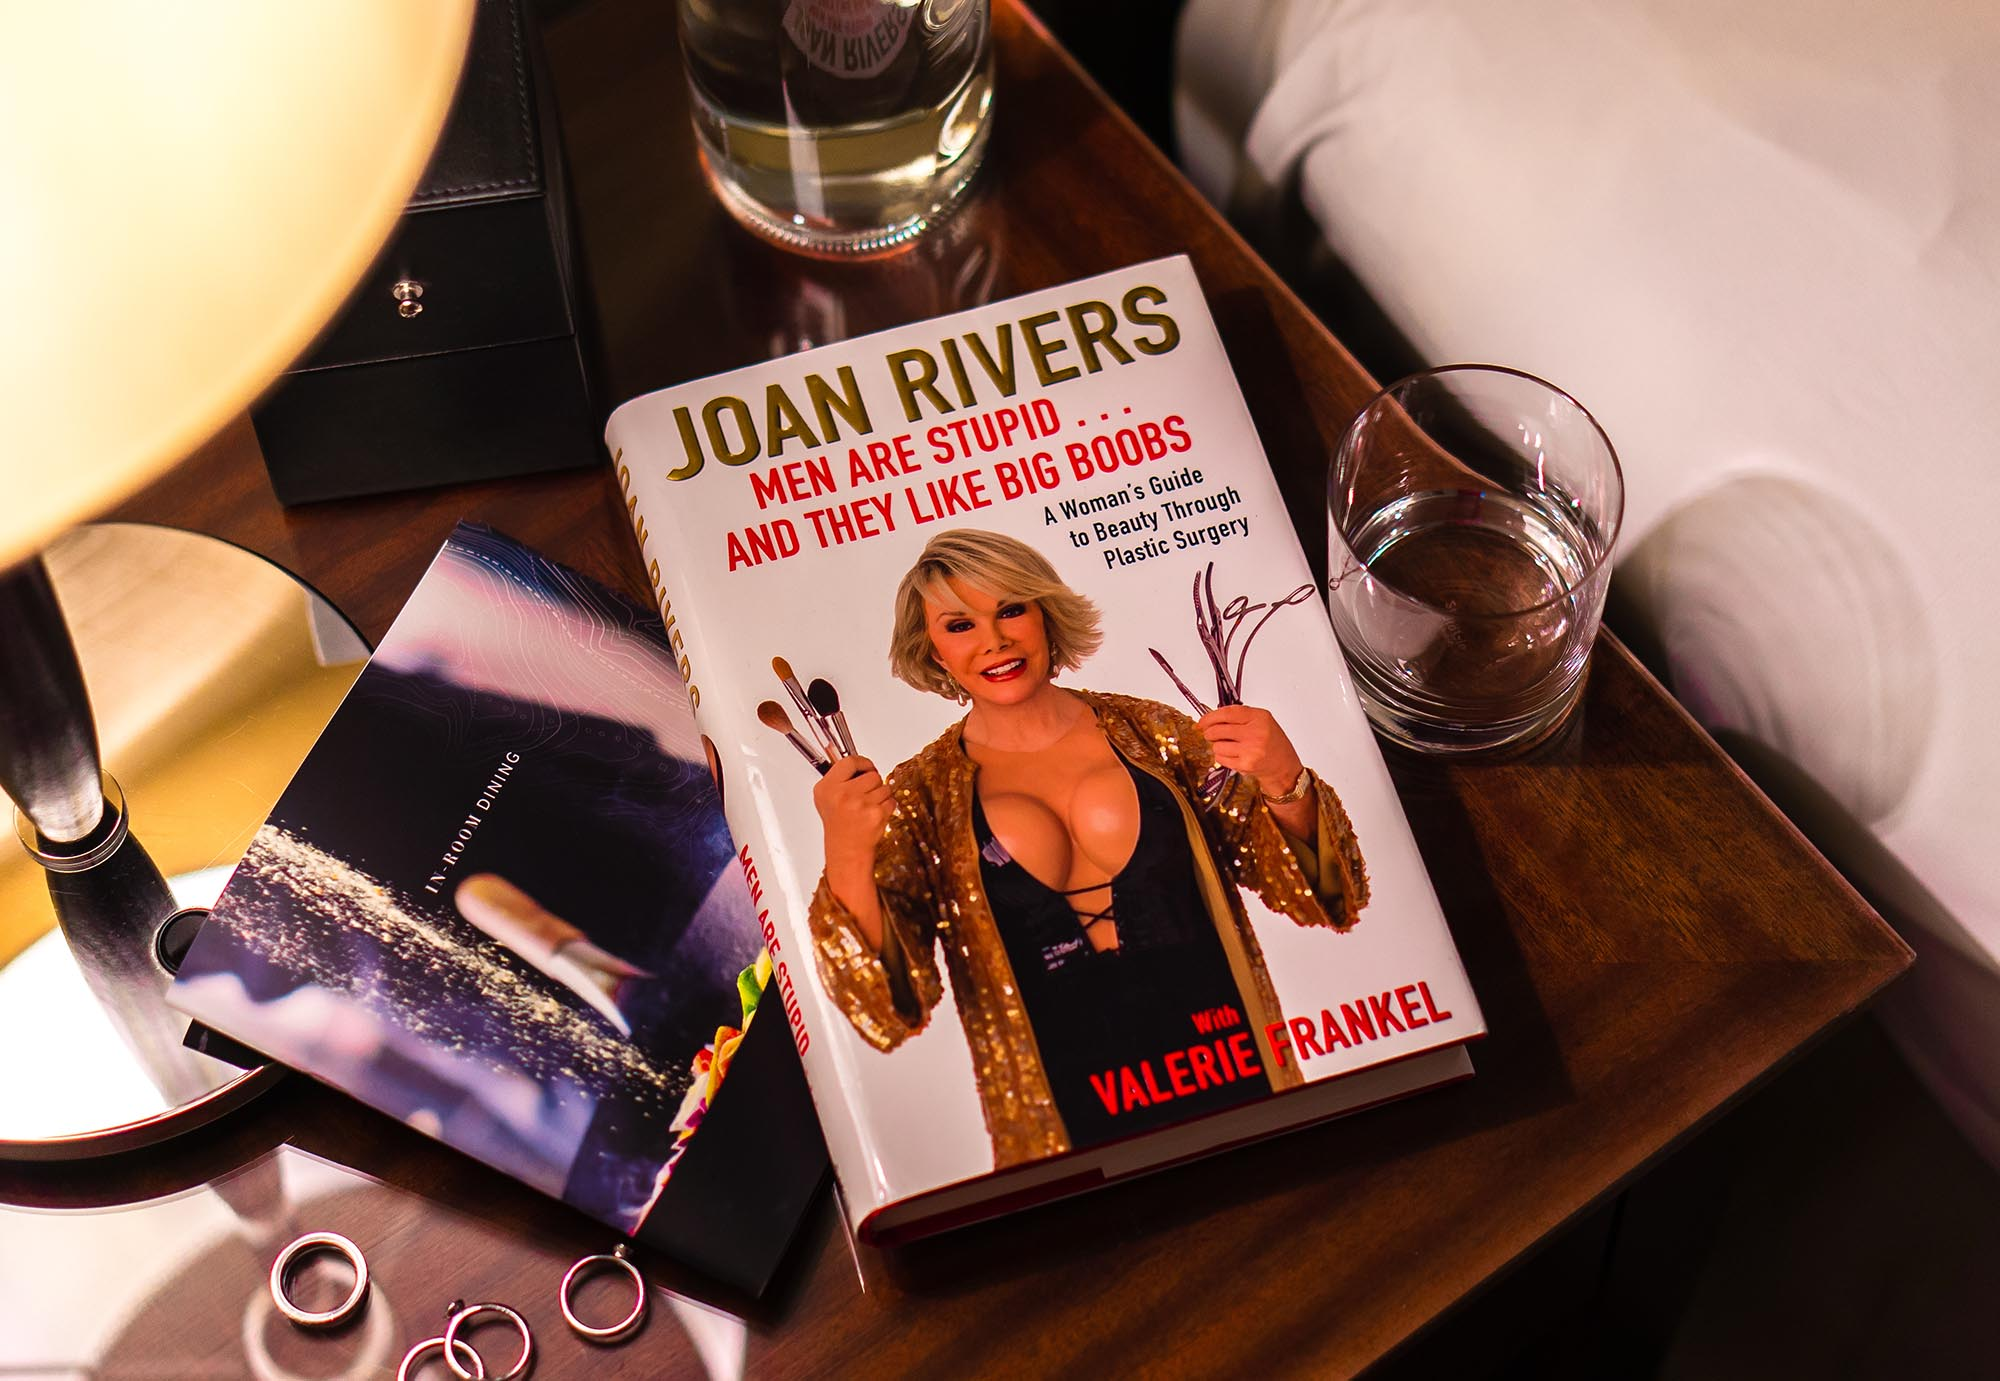 Joan Rivers Men are stupid and they like big boobs book